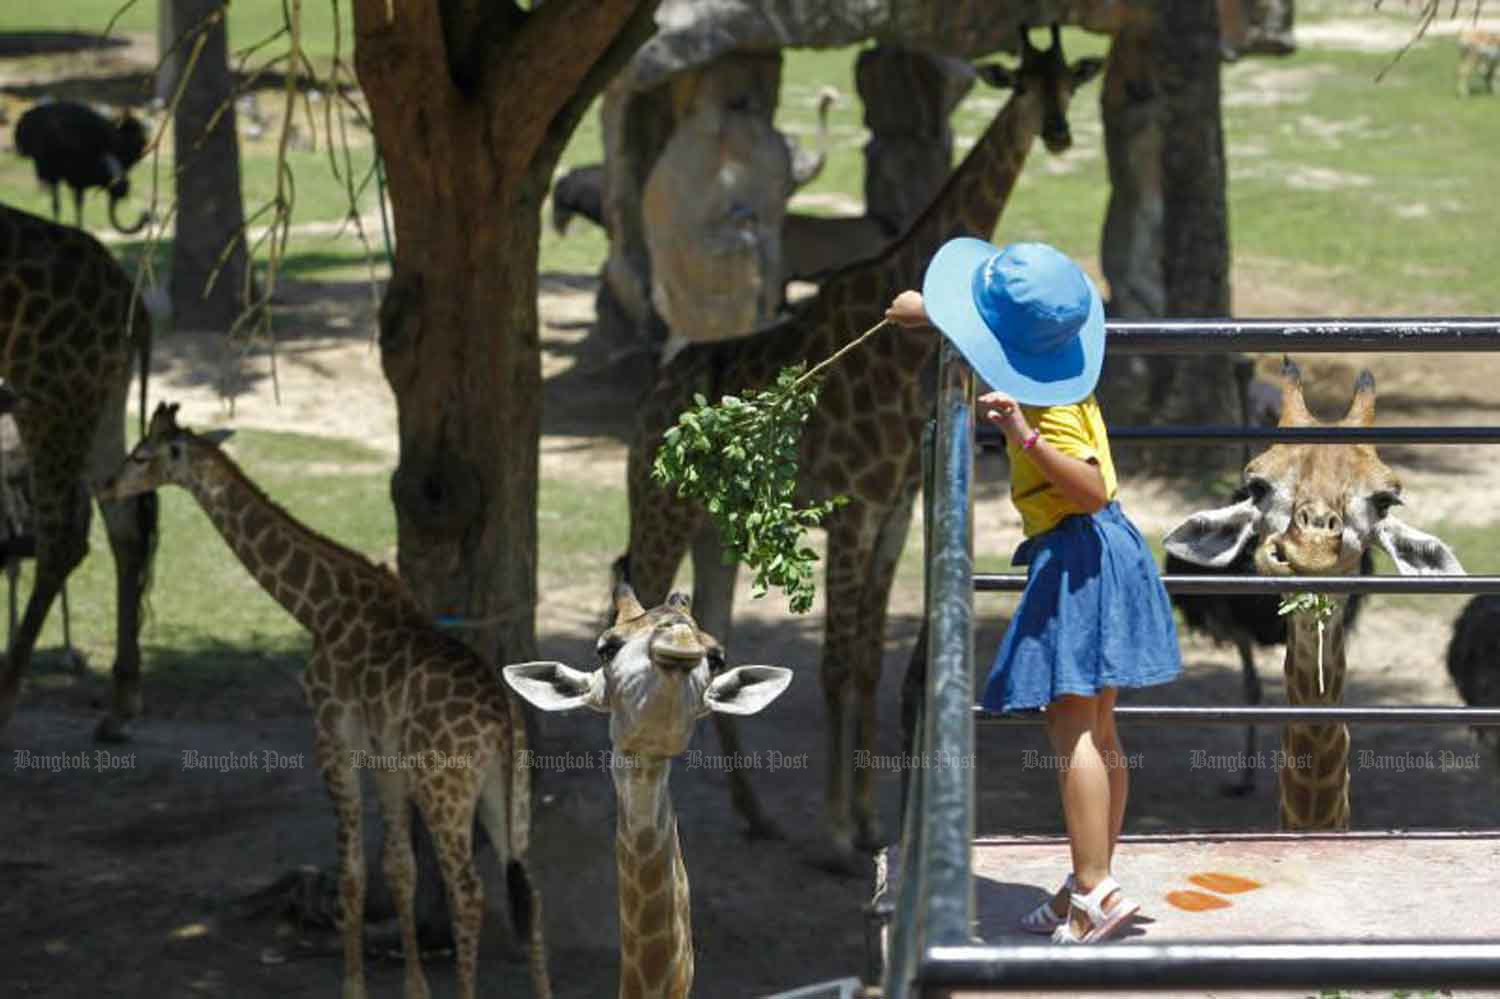 A girl feeds a giraffe at Khao Kheow in Chon Buri's Si Racha district last Friday after the zoo reopened. (Photo: Pattarapong Chatpattarasill)